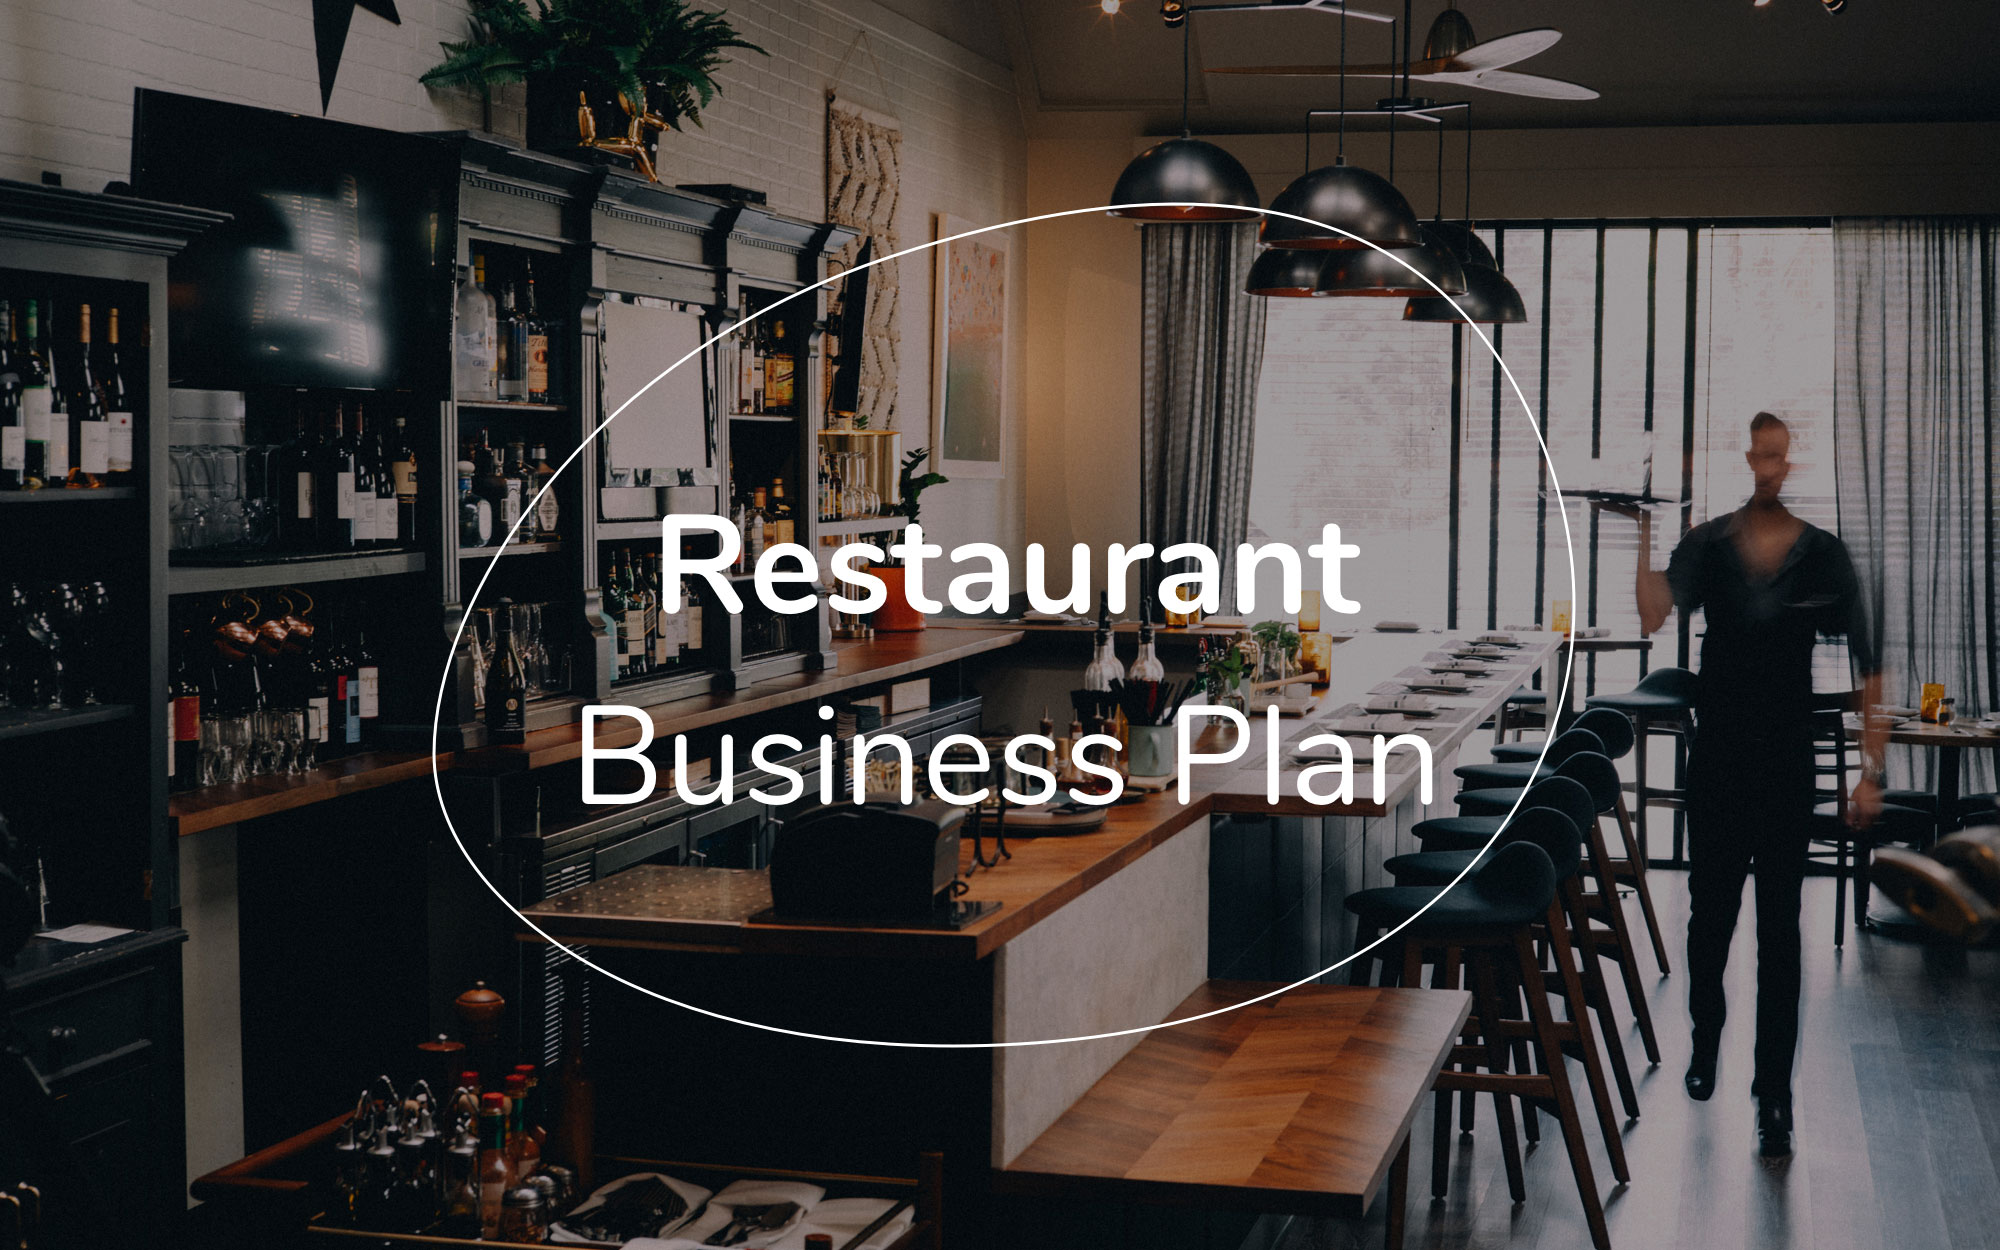 Restaurant Business Plan Sample Presentation Templates